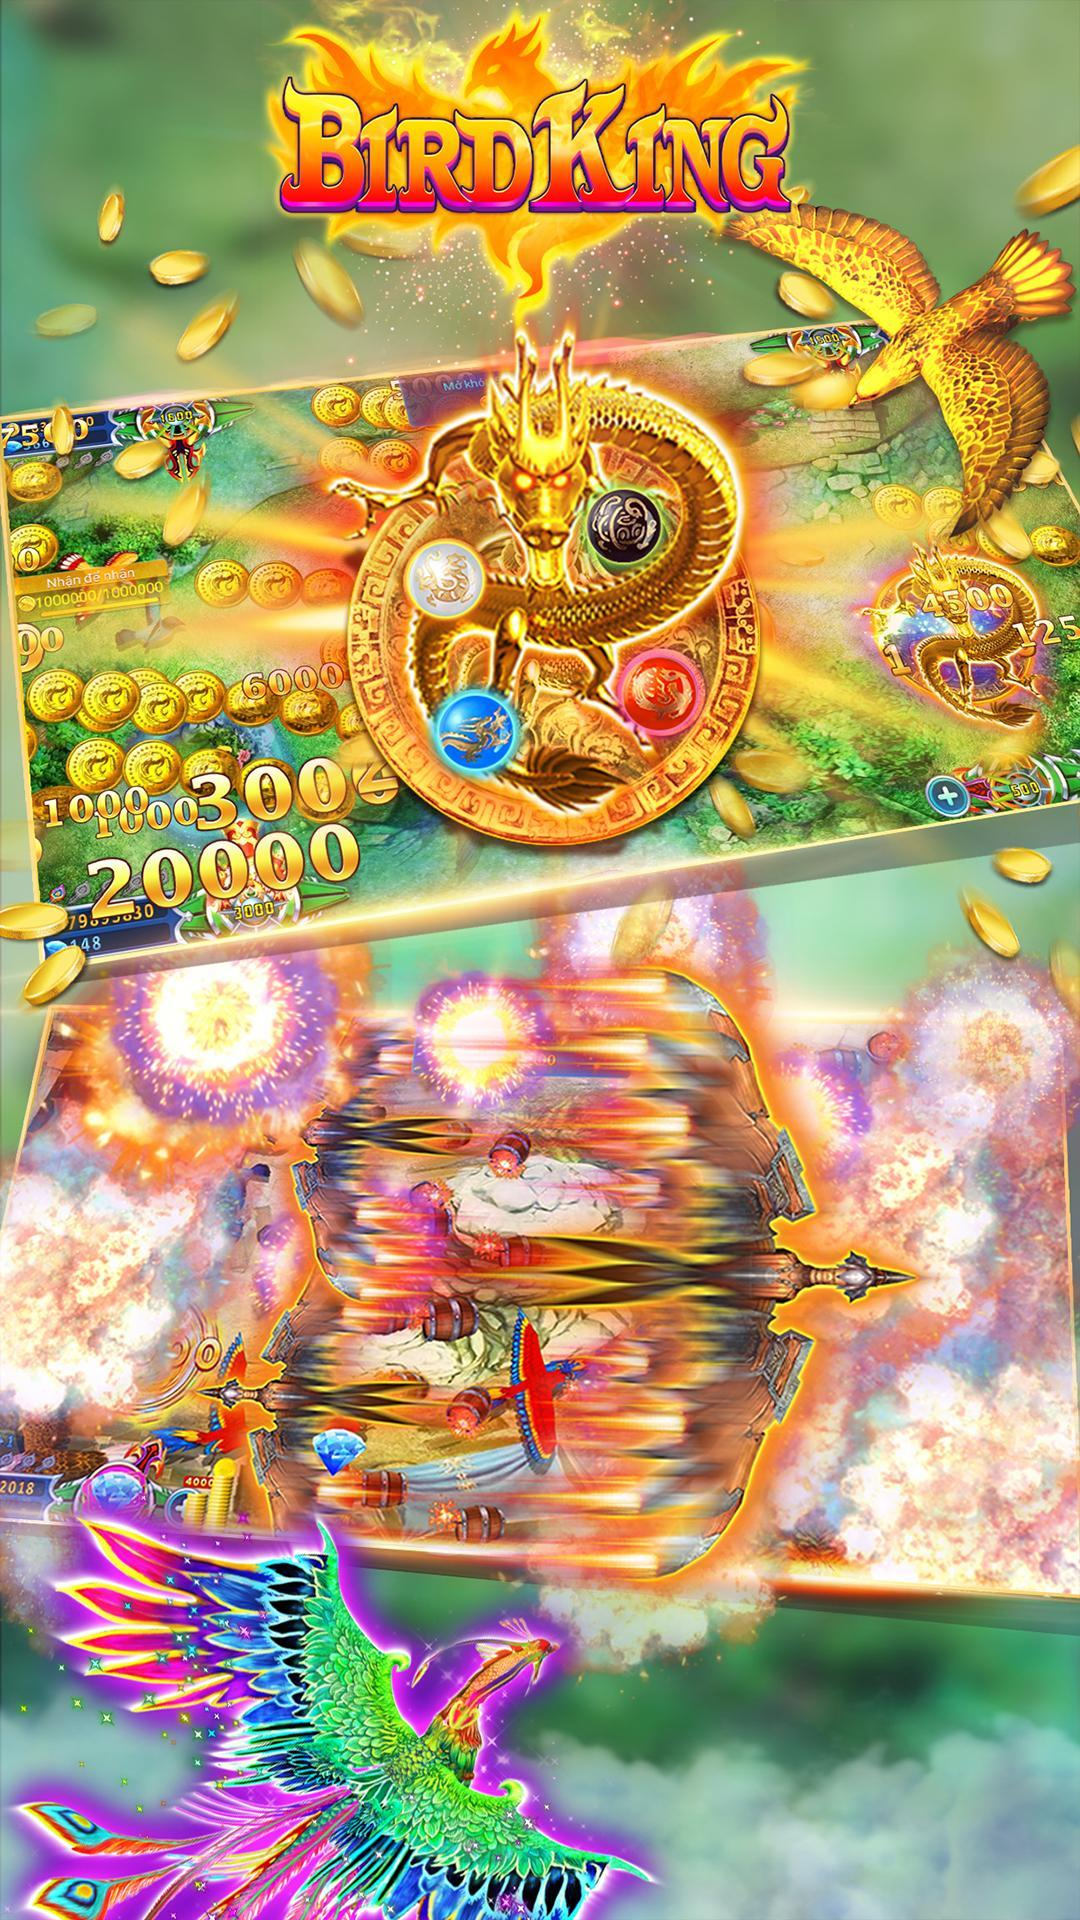 Dragon King Fishing Online-Arcade  Fish Games 5.2.0 Screenshot 19